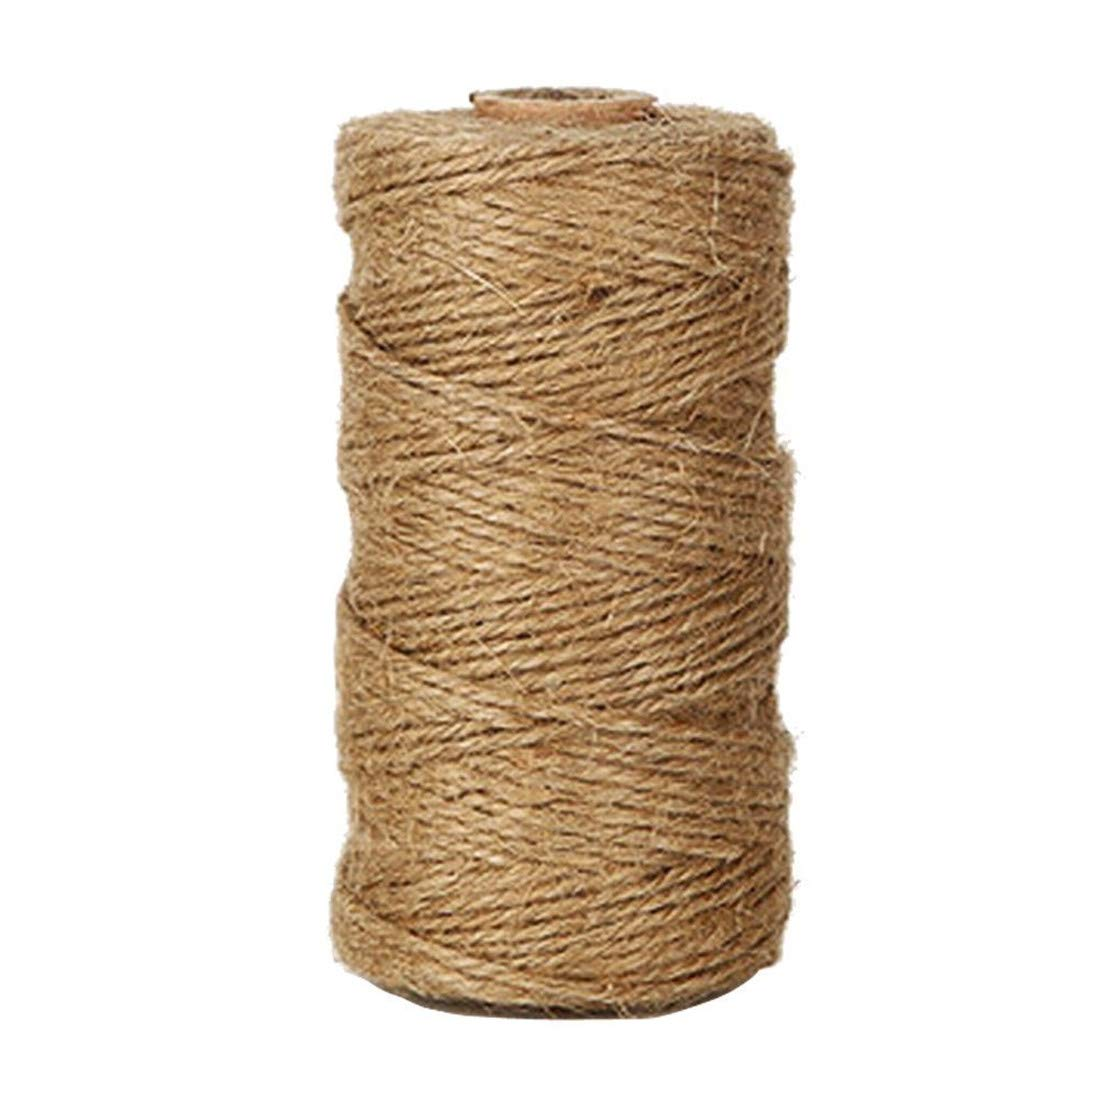 Awefrank Natural Jute Twine, Best Arts Crafts Gift Twine, Christmas Twine Industrial Packing Materials Durable String for Gardening Applications (1 Pcs x 328 Feet)